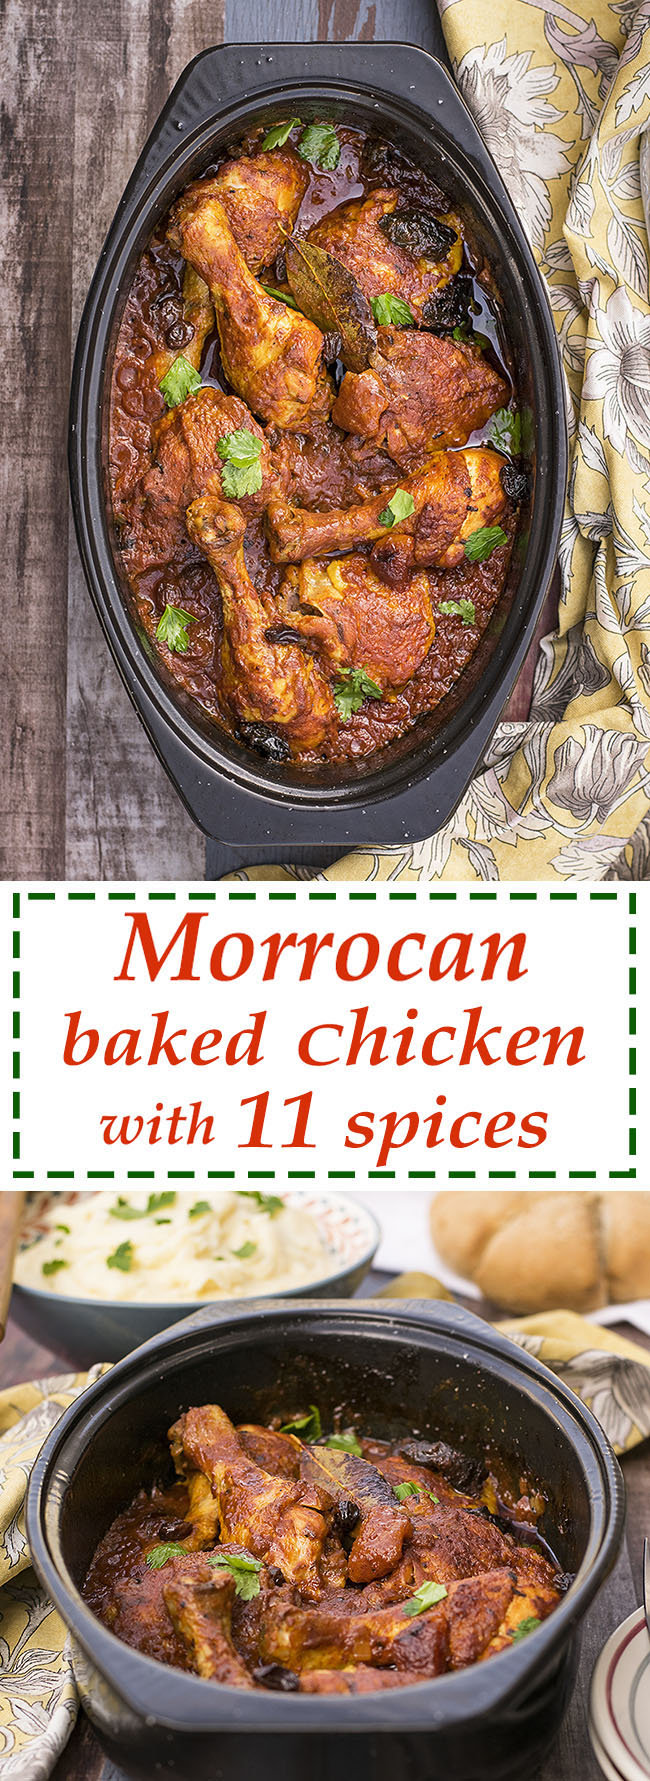 Moroccan baked chicken with 11 spices 5